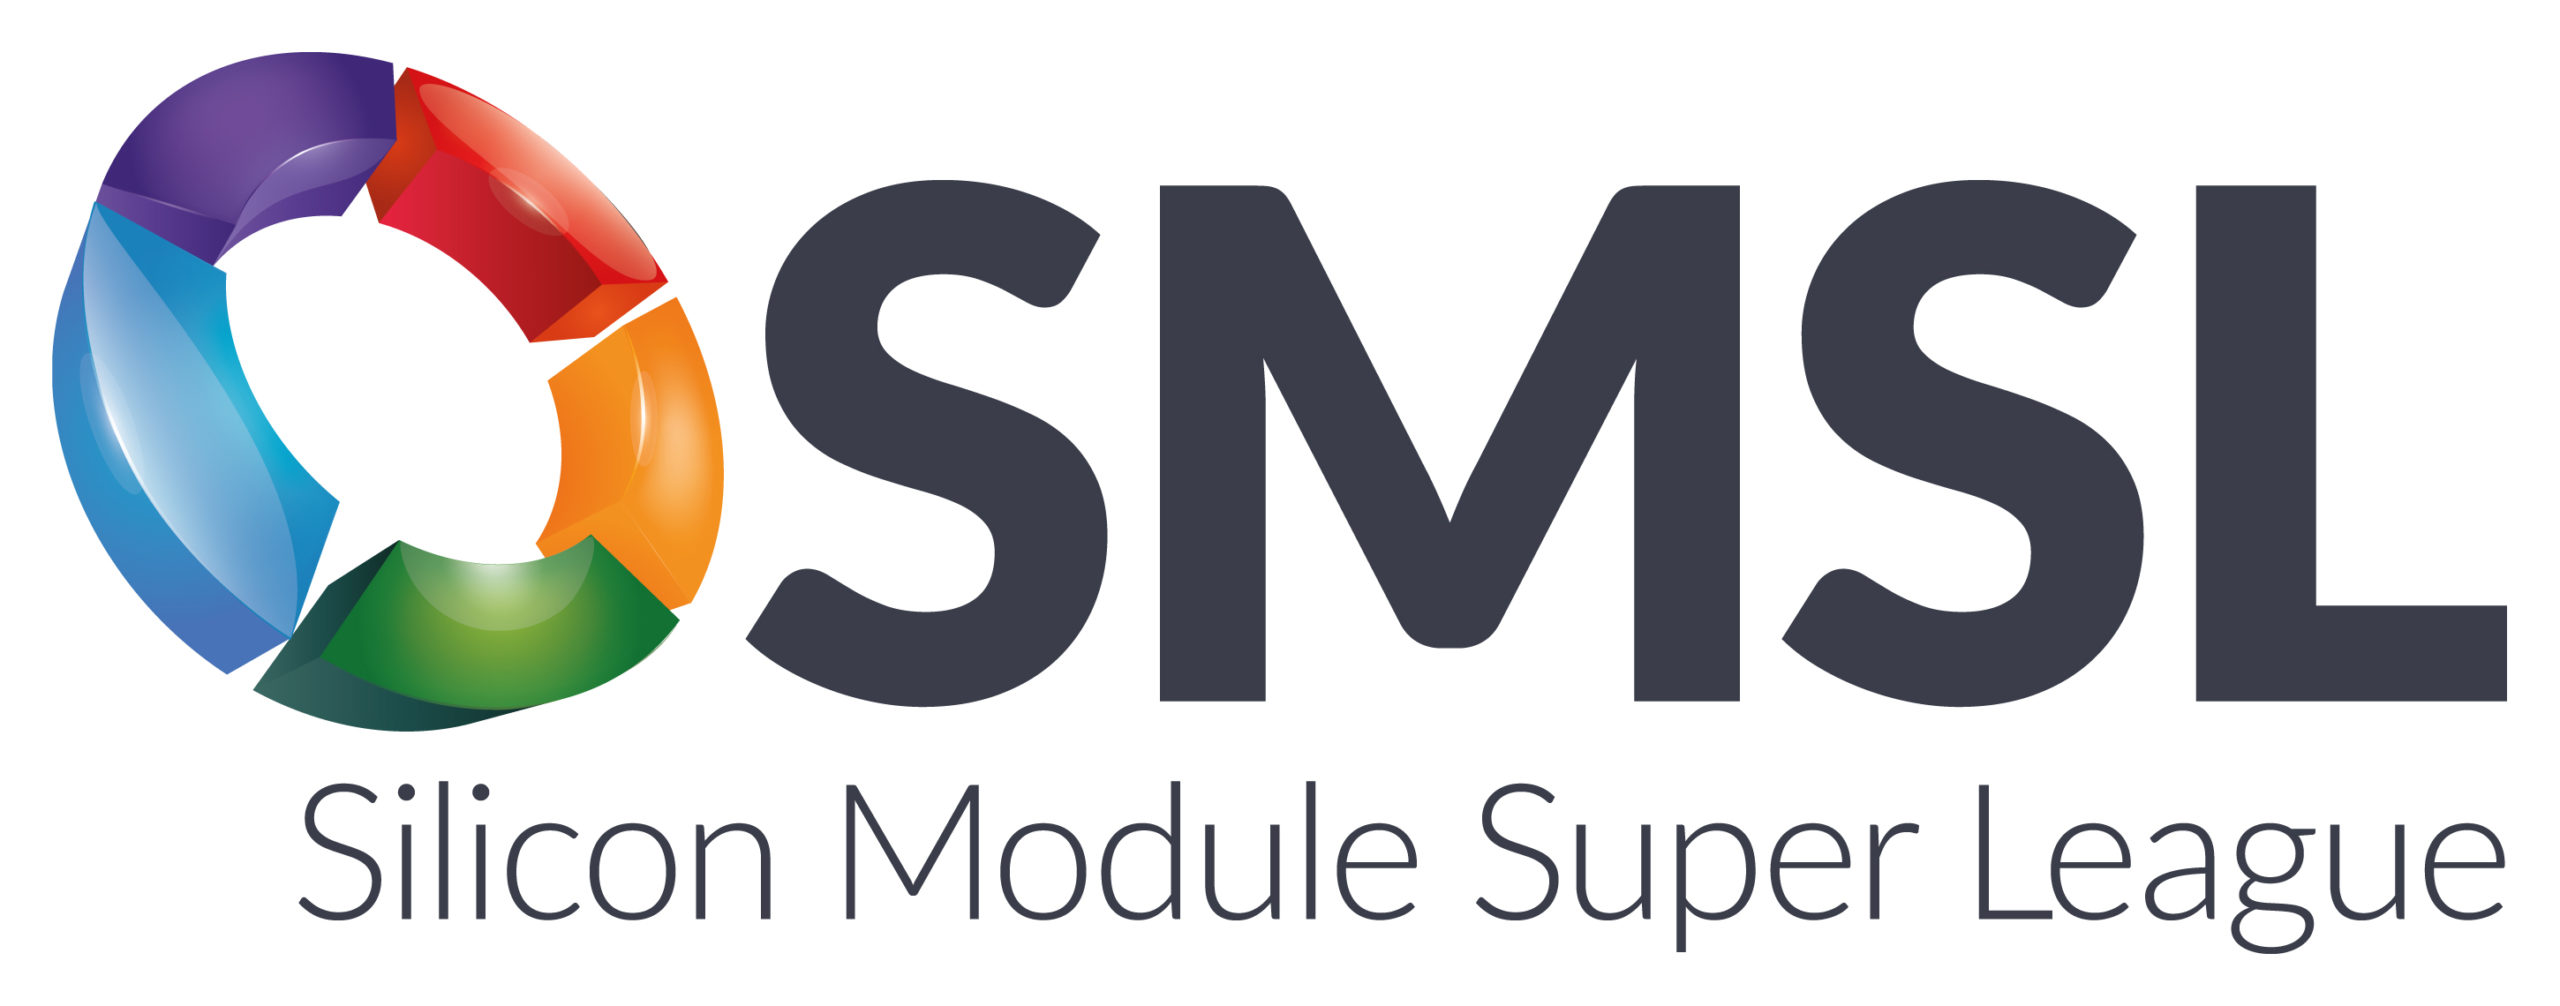 A key factor in the strong growth of the PV industry in 2017 is the Silicon Module Super League (or SMSL), comprised of the seven companies that will each ship in excess of 4GW of modules this year, well above all other module suppliers to the industry.